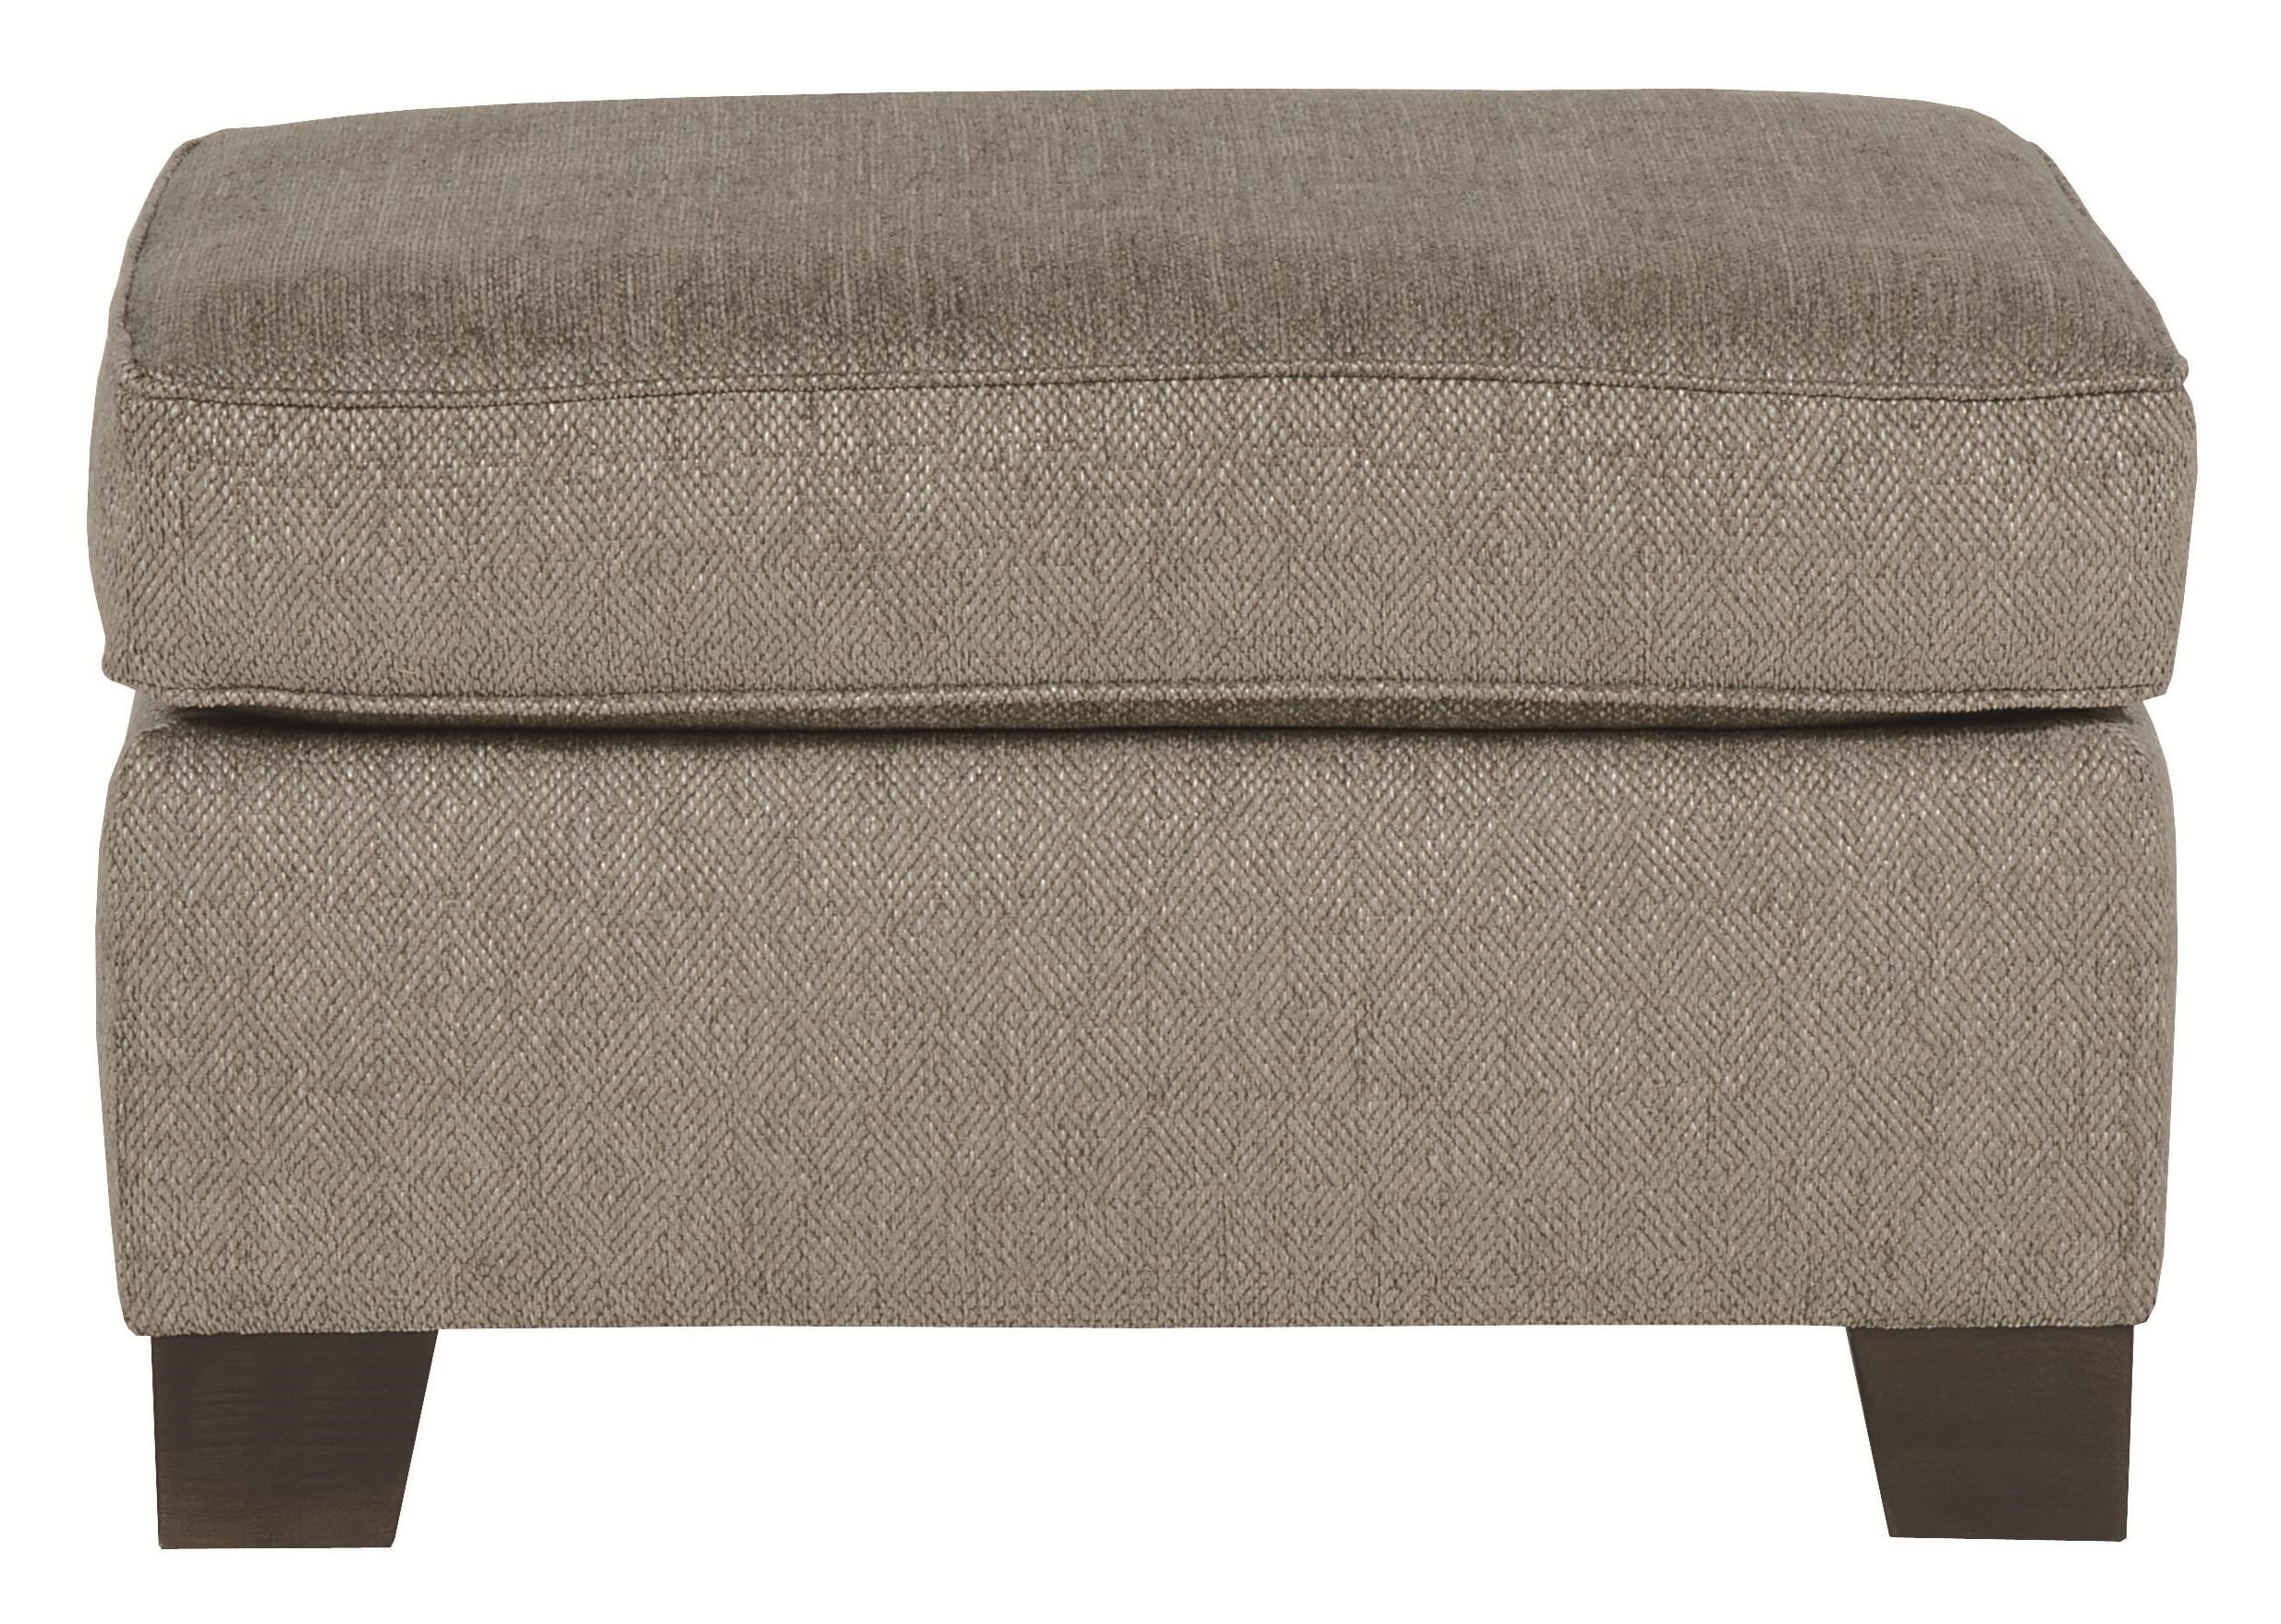 urban accents furniture. Interiors - Franco Simplistically Crafted Footrest Ottoman For Urban Accent To Living Room Chair By Bernhardt Accents Furniture R